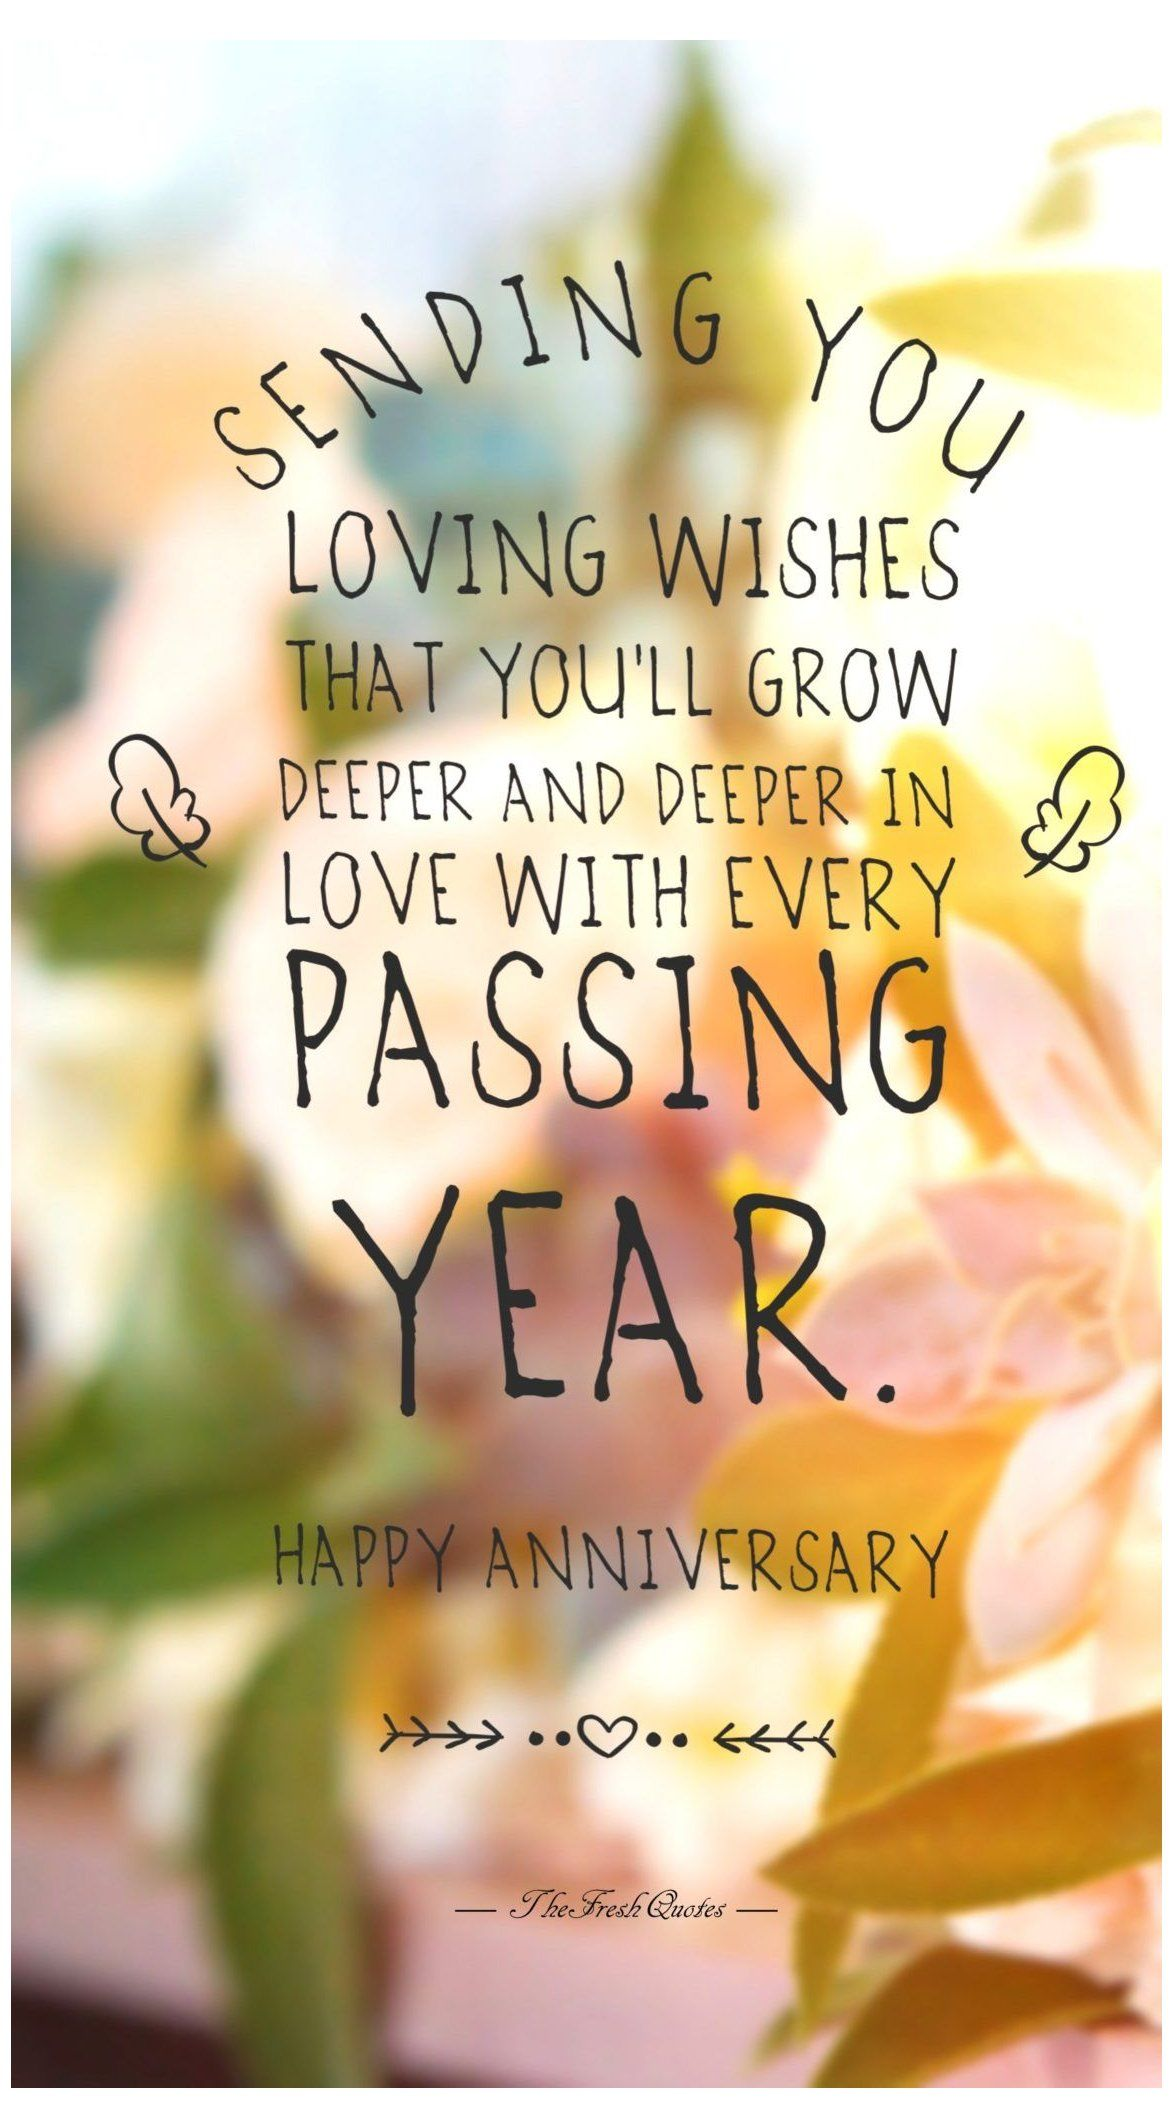 60 Happy Anniversary Wishes And Messages 106479 Happy Anniversary Happyannive Happy Anniversary Wishes Happy Anniversary Quotes Happy Anniversary Messages